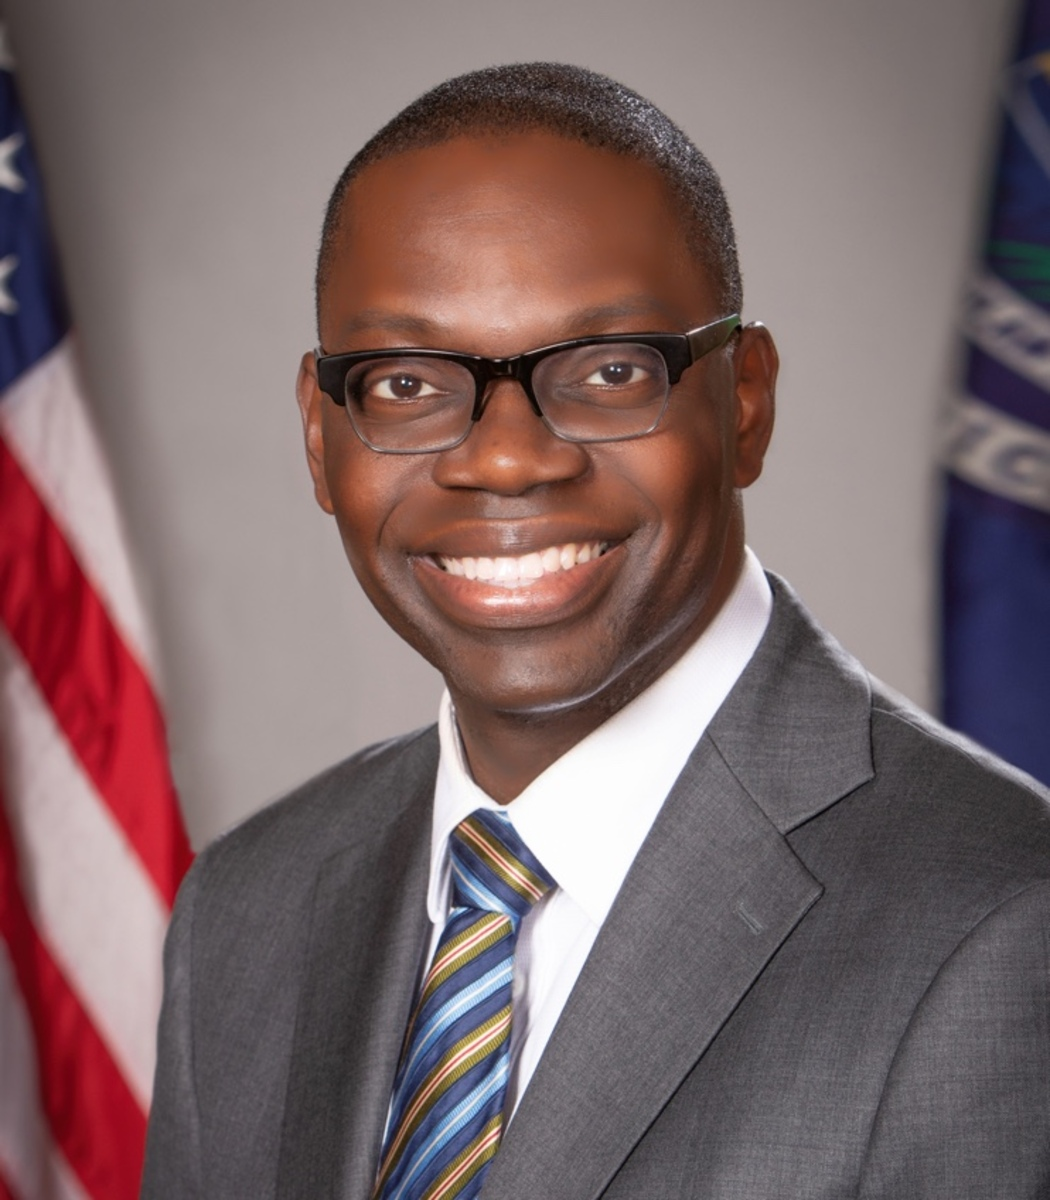 Lt. Governor Garlin Gilchrist Stops in Ypsilanti